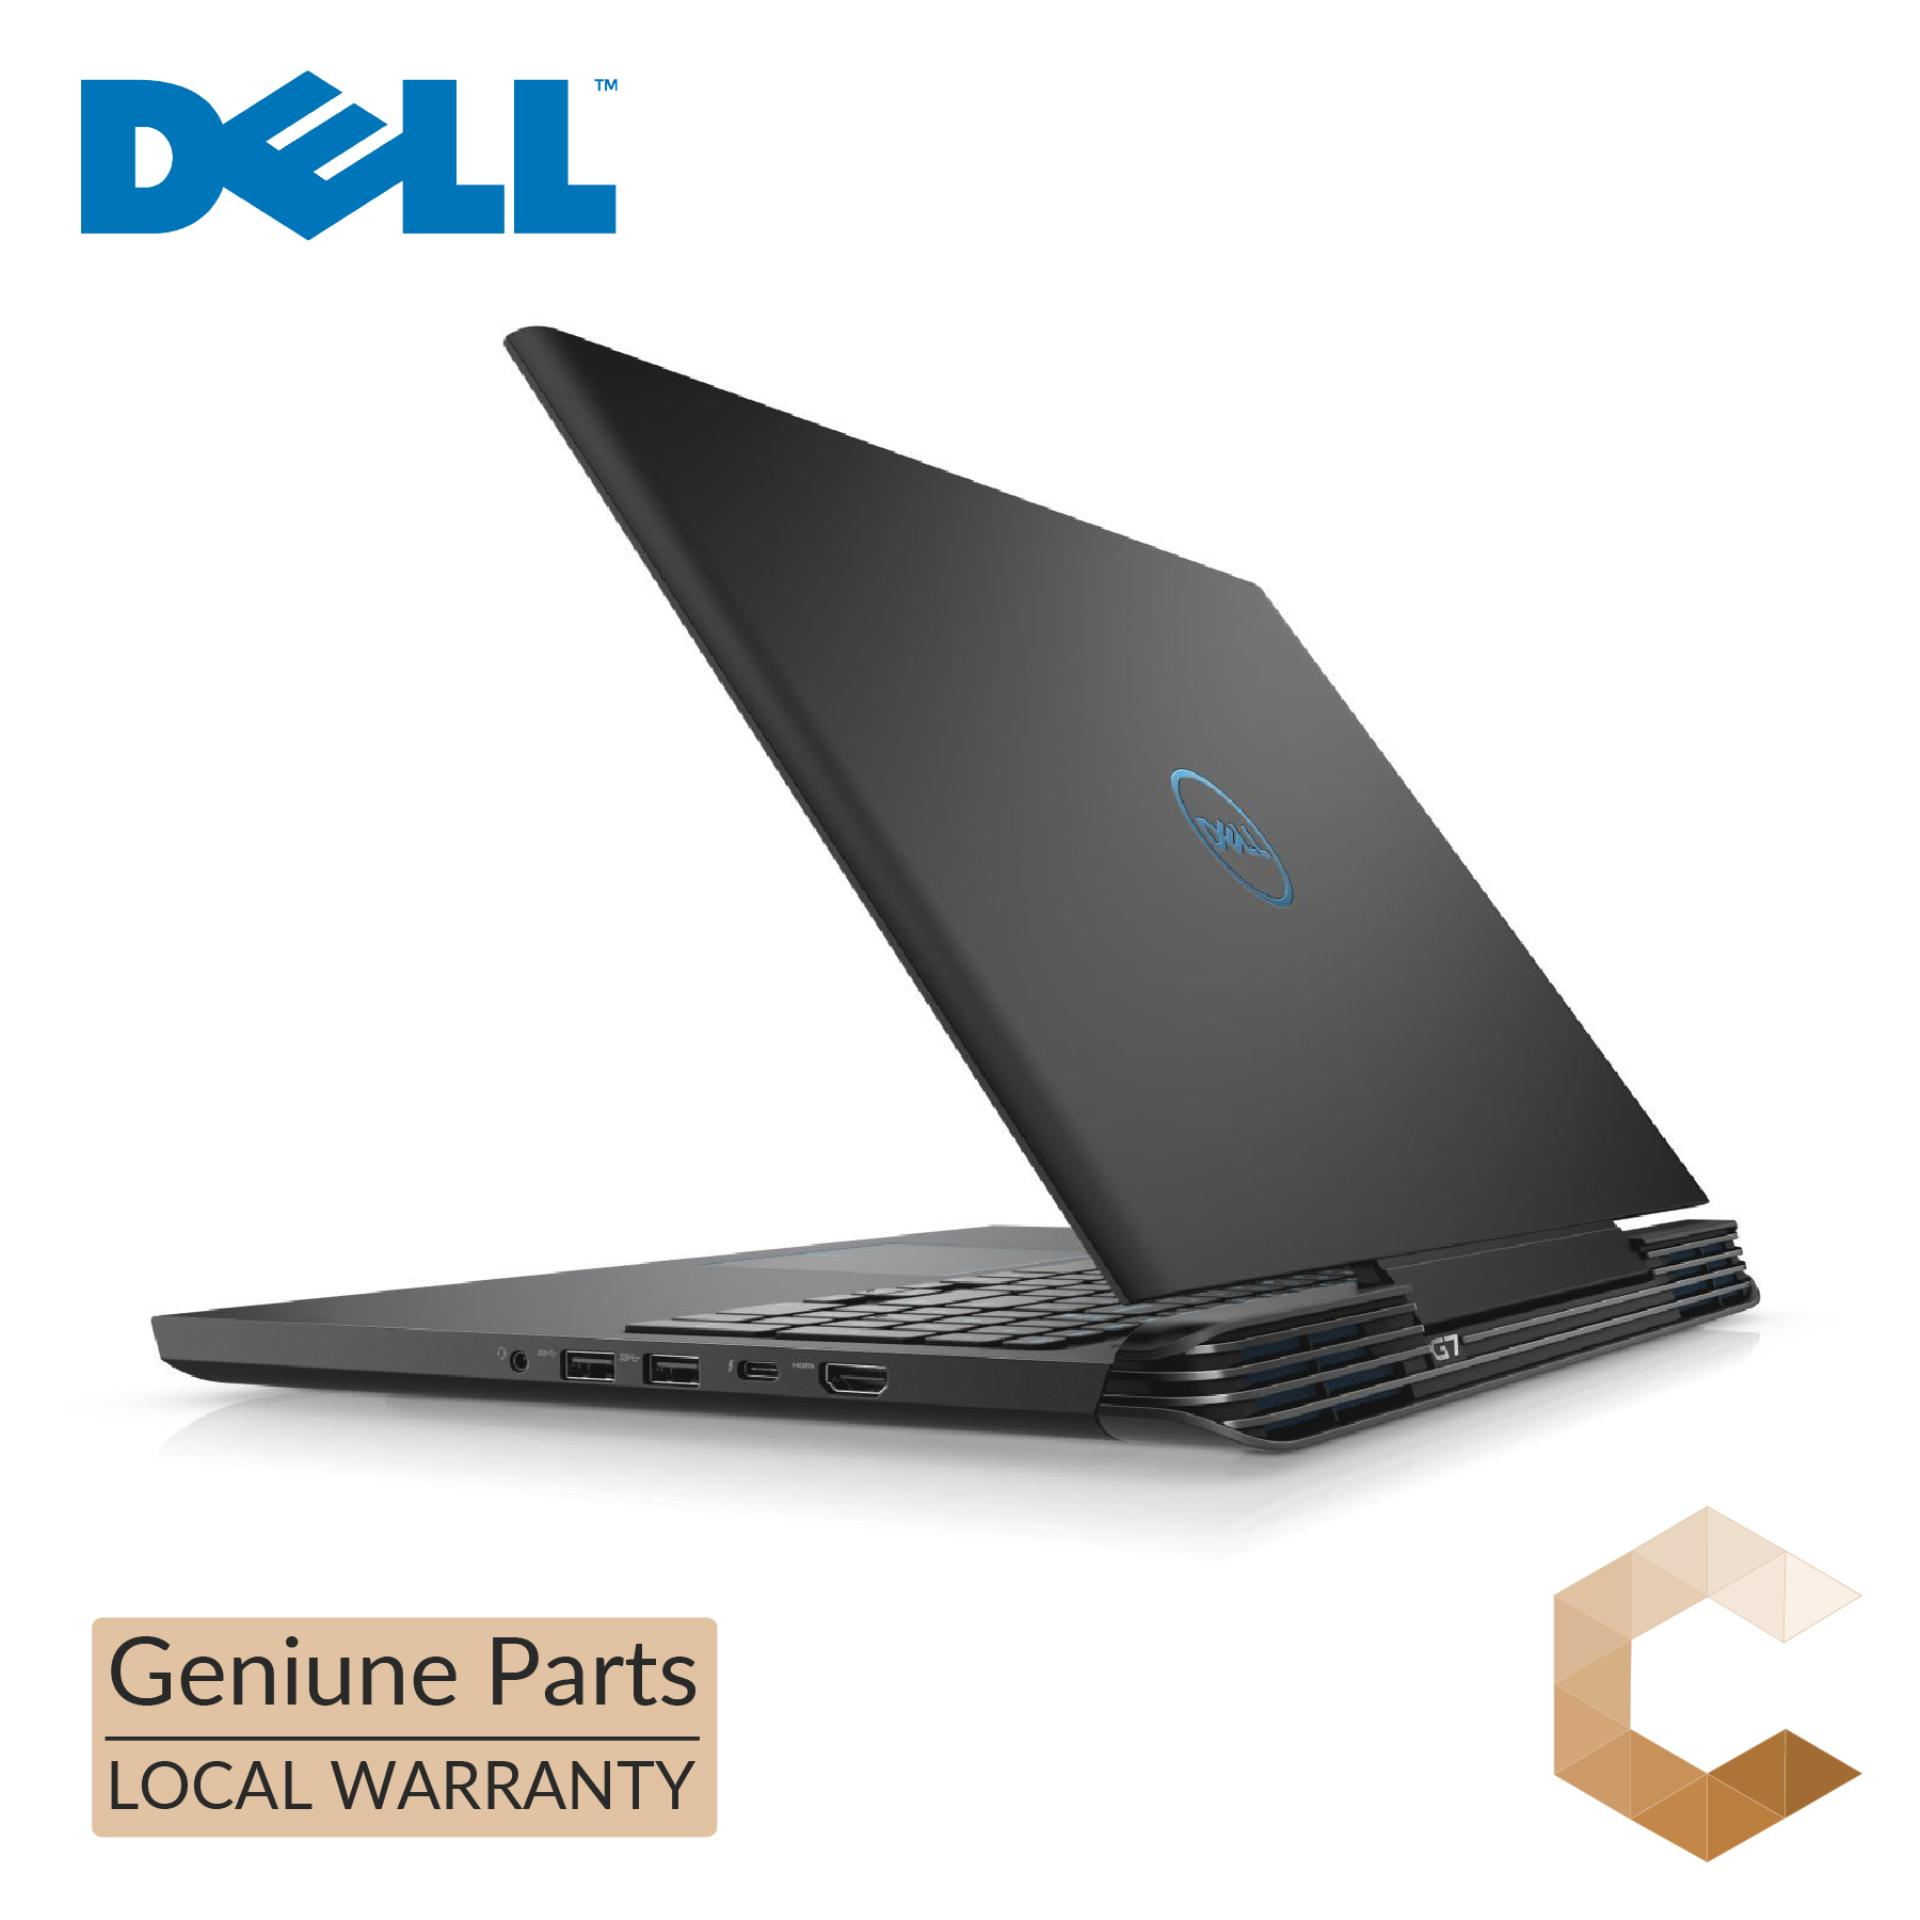 DELL NOTEBOOKS | G7-875814GL-BLK